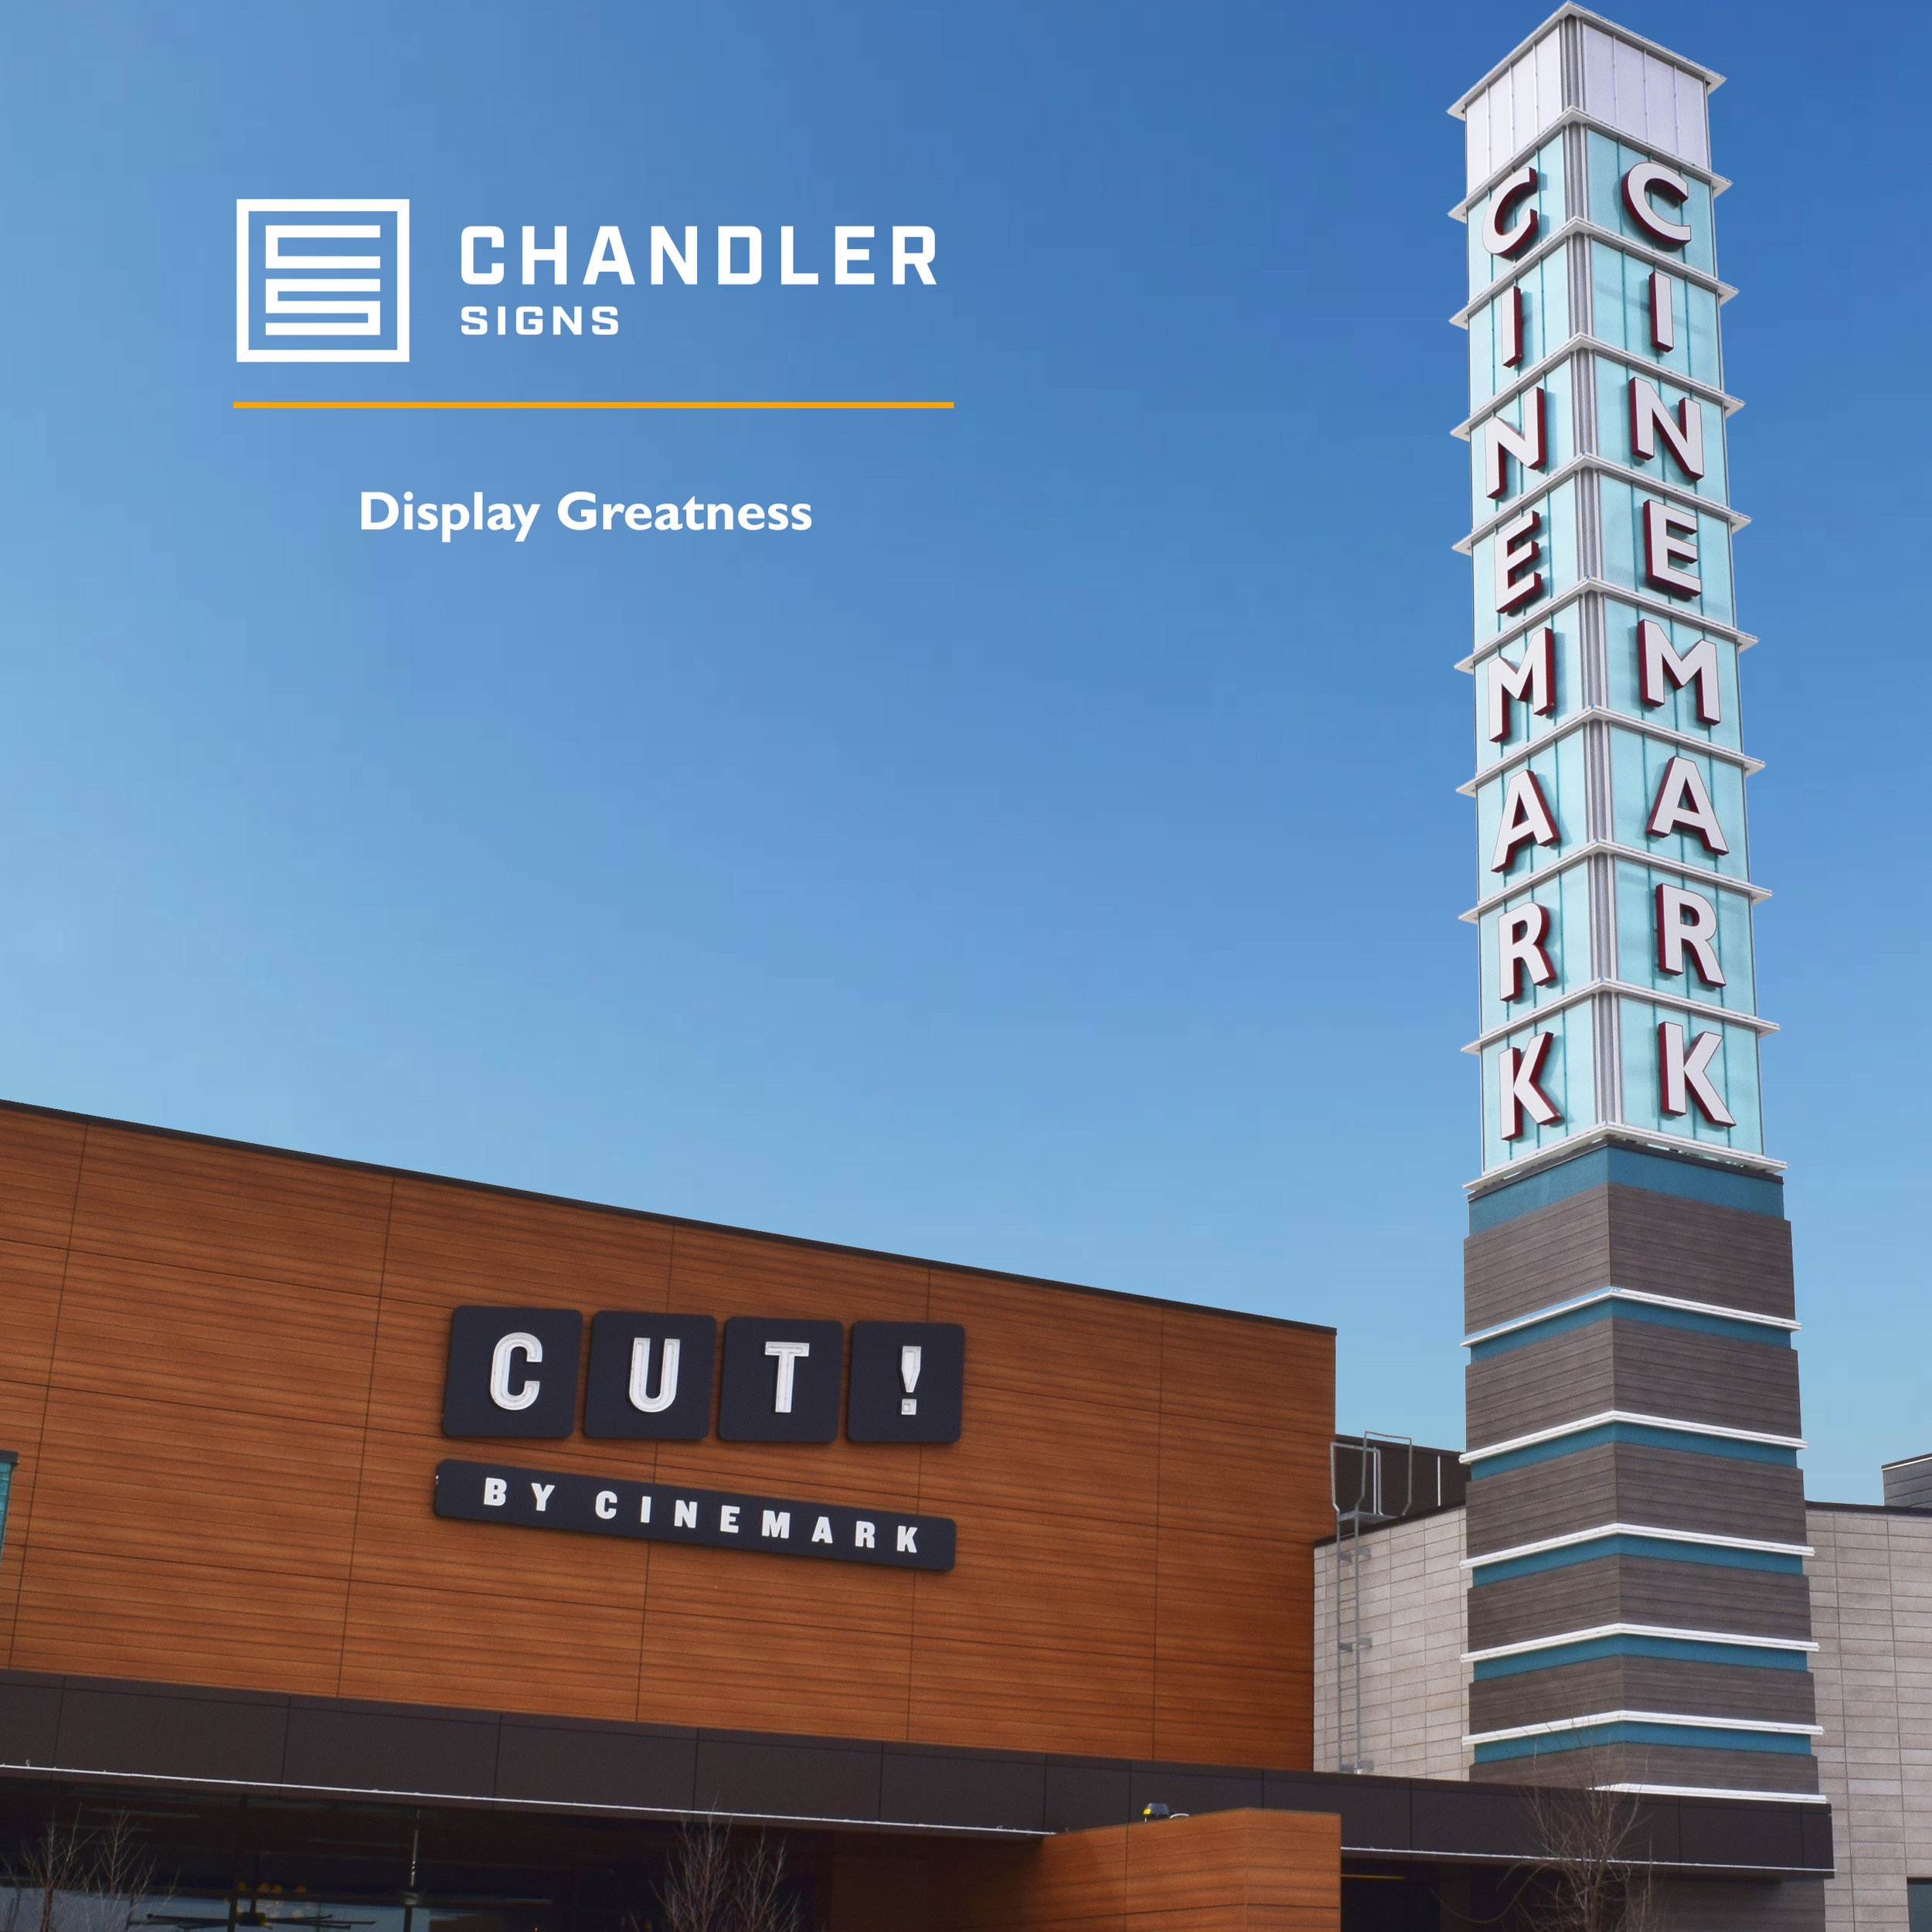 Cut! by Cinemark—Frisco, TX